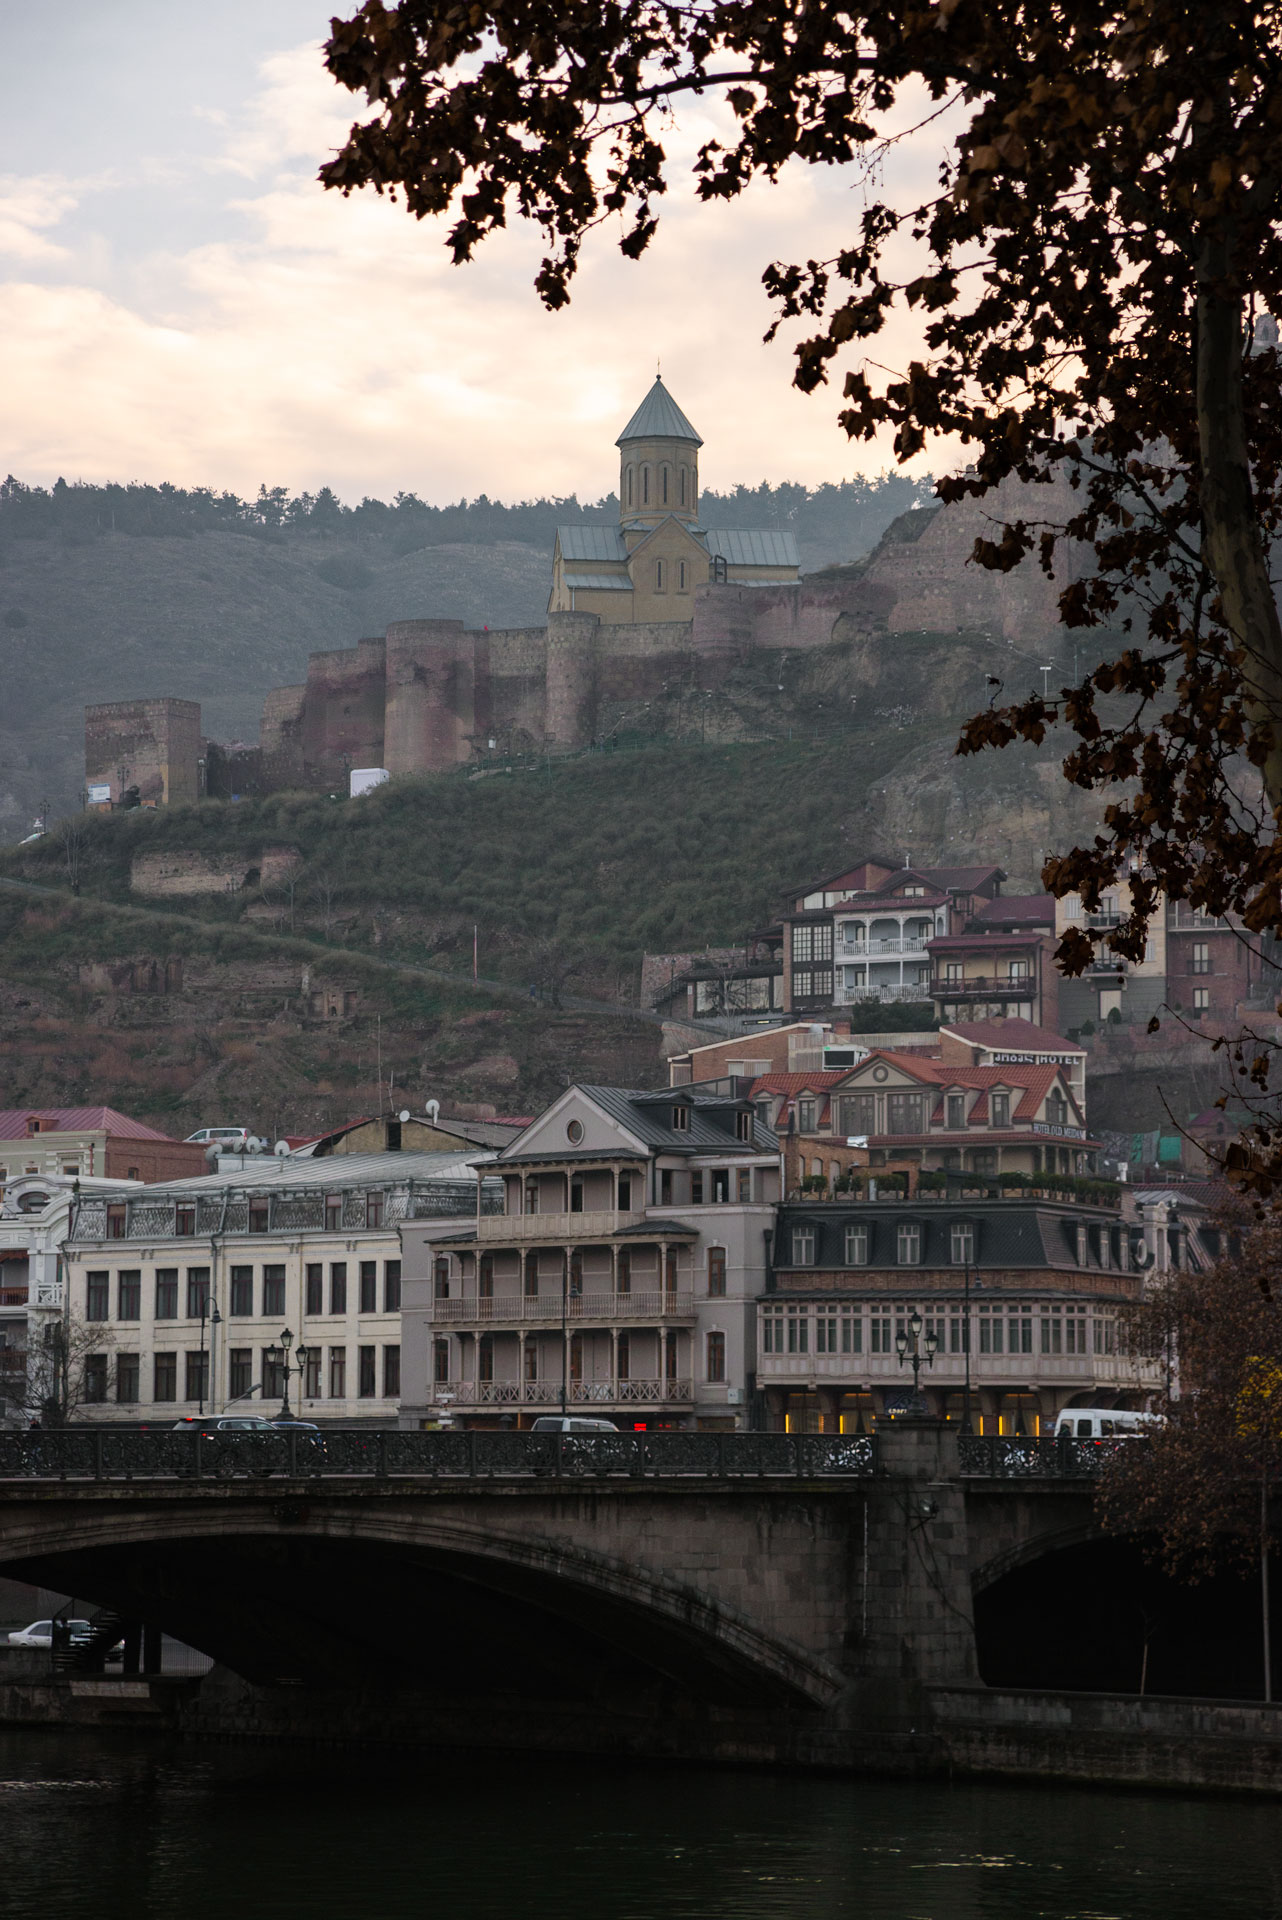 Another view of the Mtkvari river and the beautiful views of the city it offers.